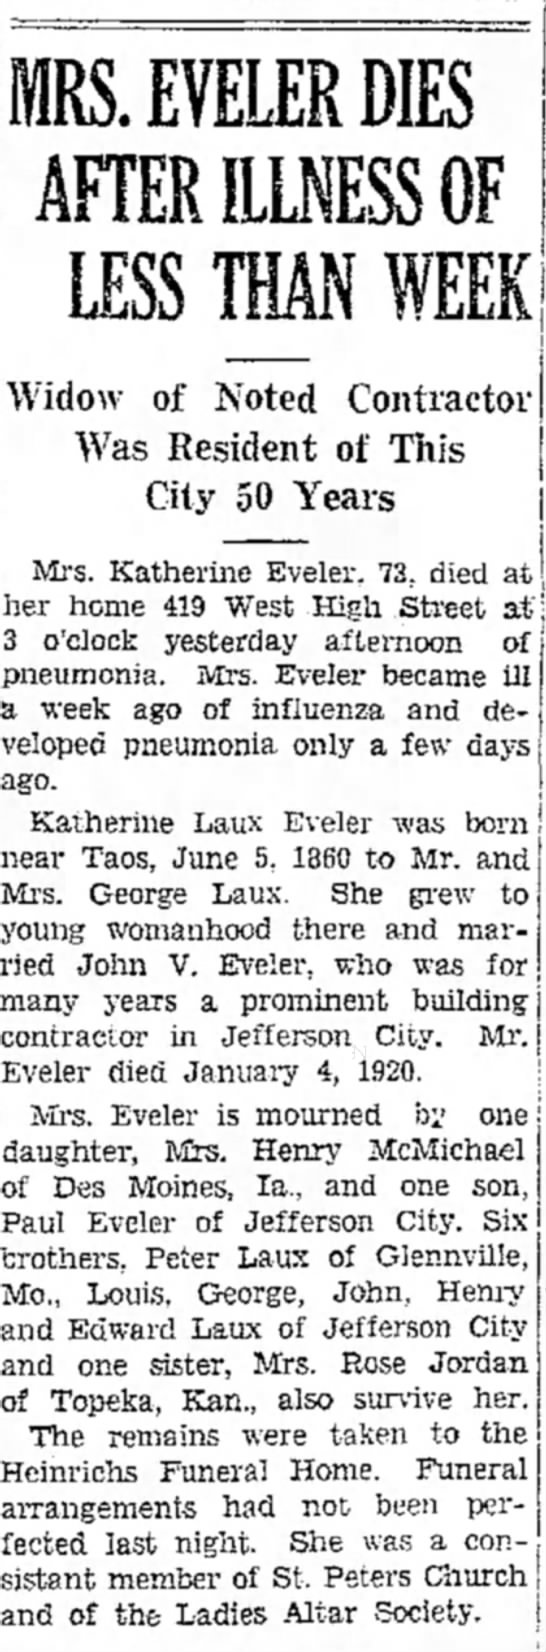 Katherin Laux Eveler Obit - Widow of Noted Contractor . . > Vas Resident of...